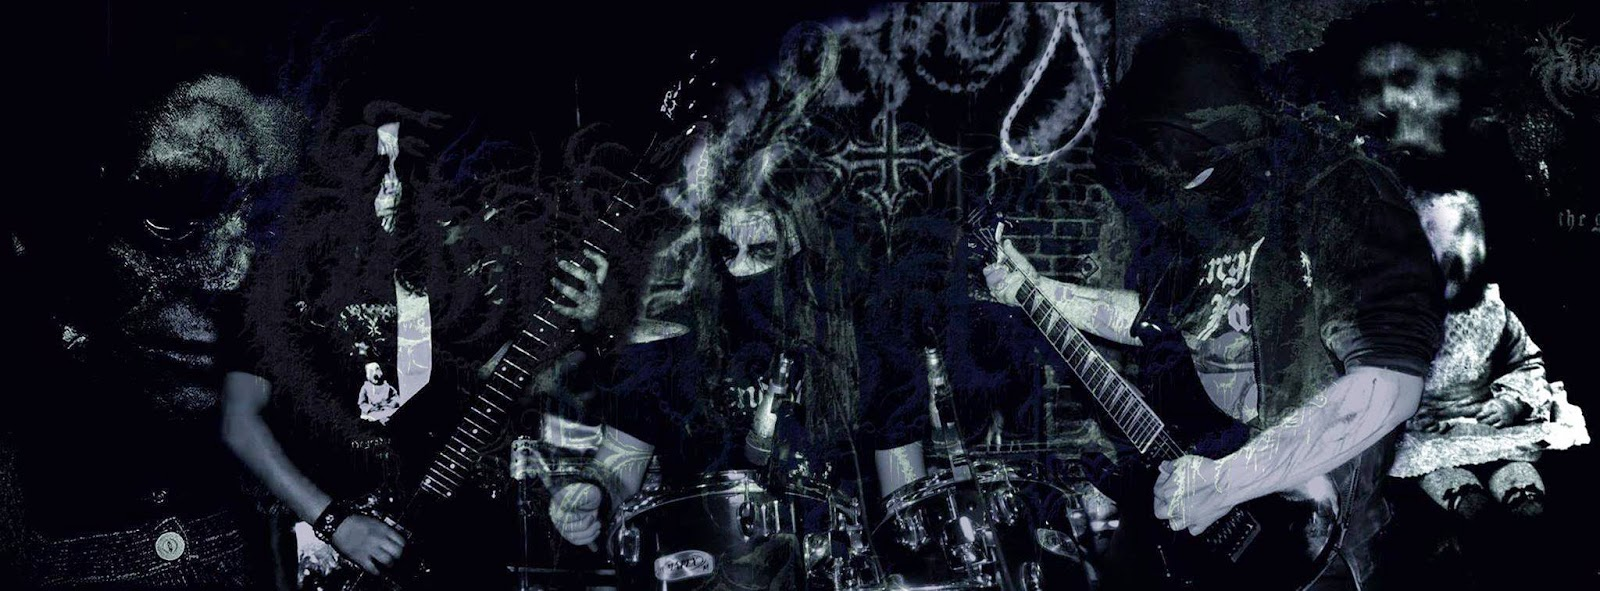 New EP 'The Vacuity' from Greek Black Metallers HUMAN SERPENT available for streaming